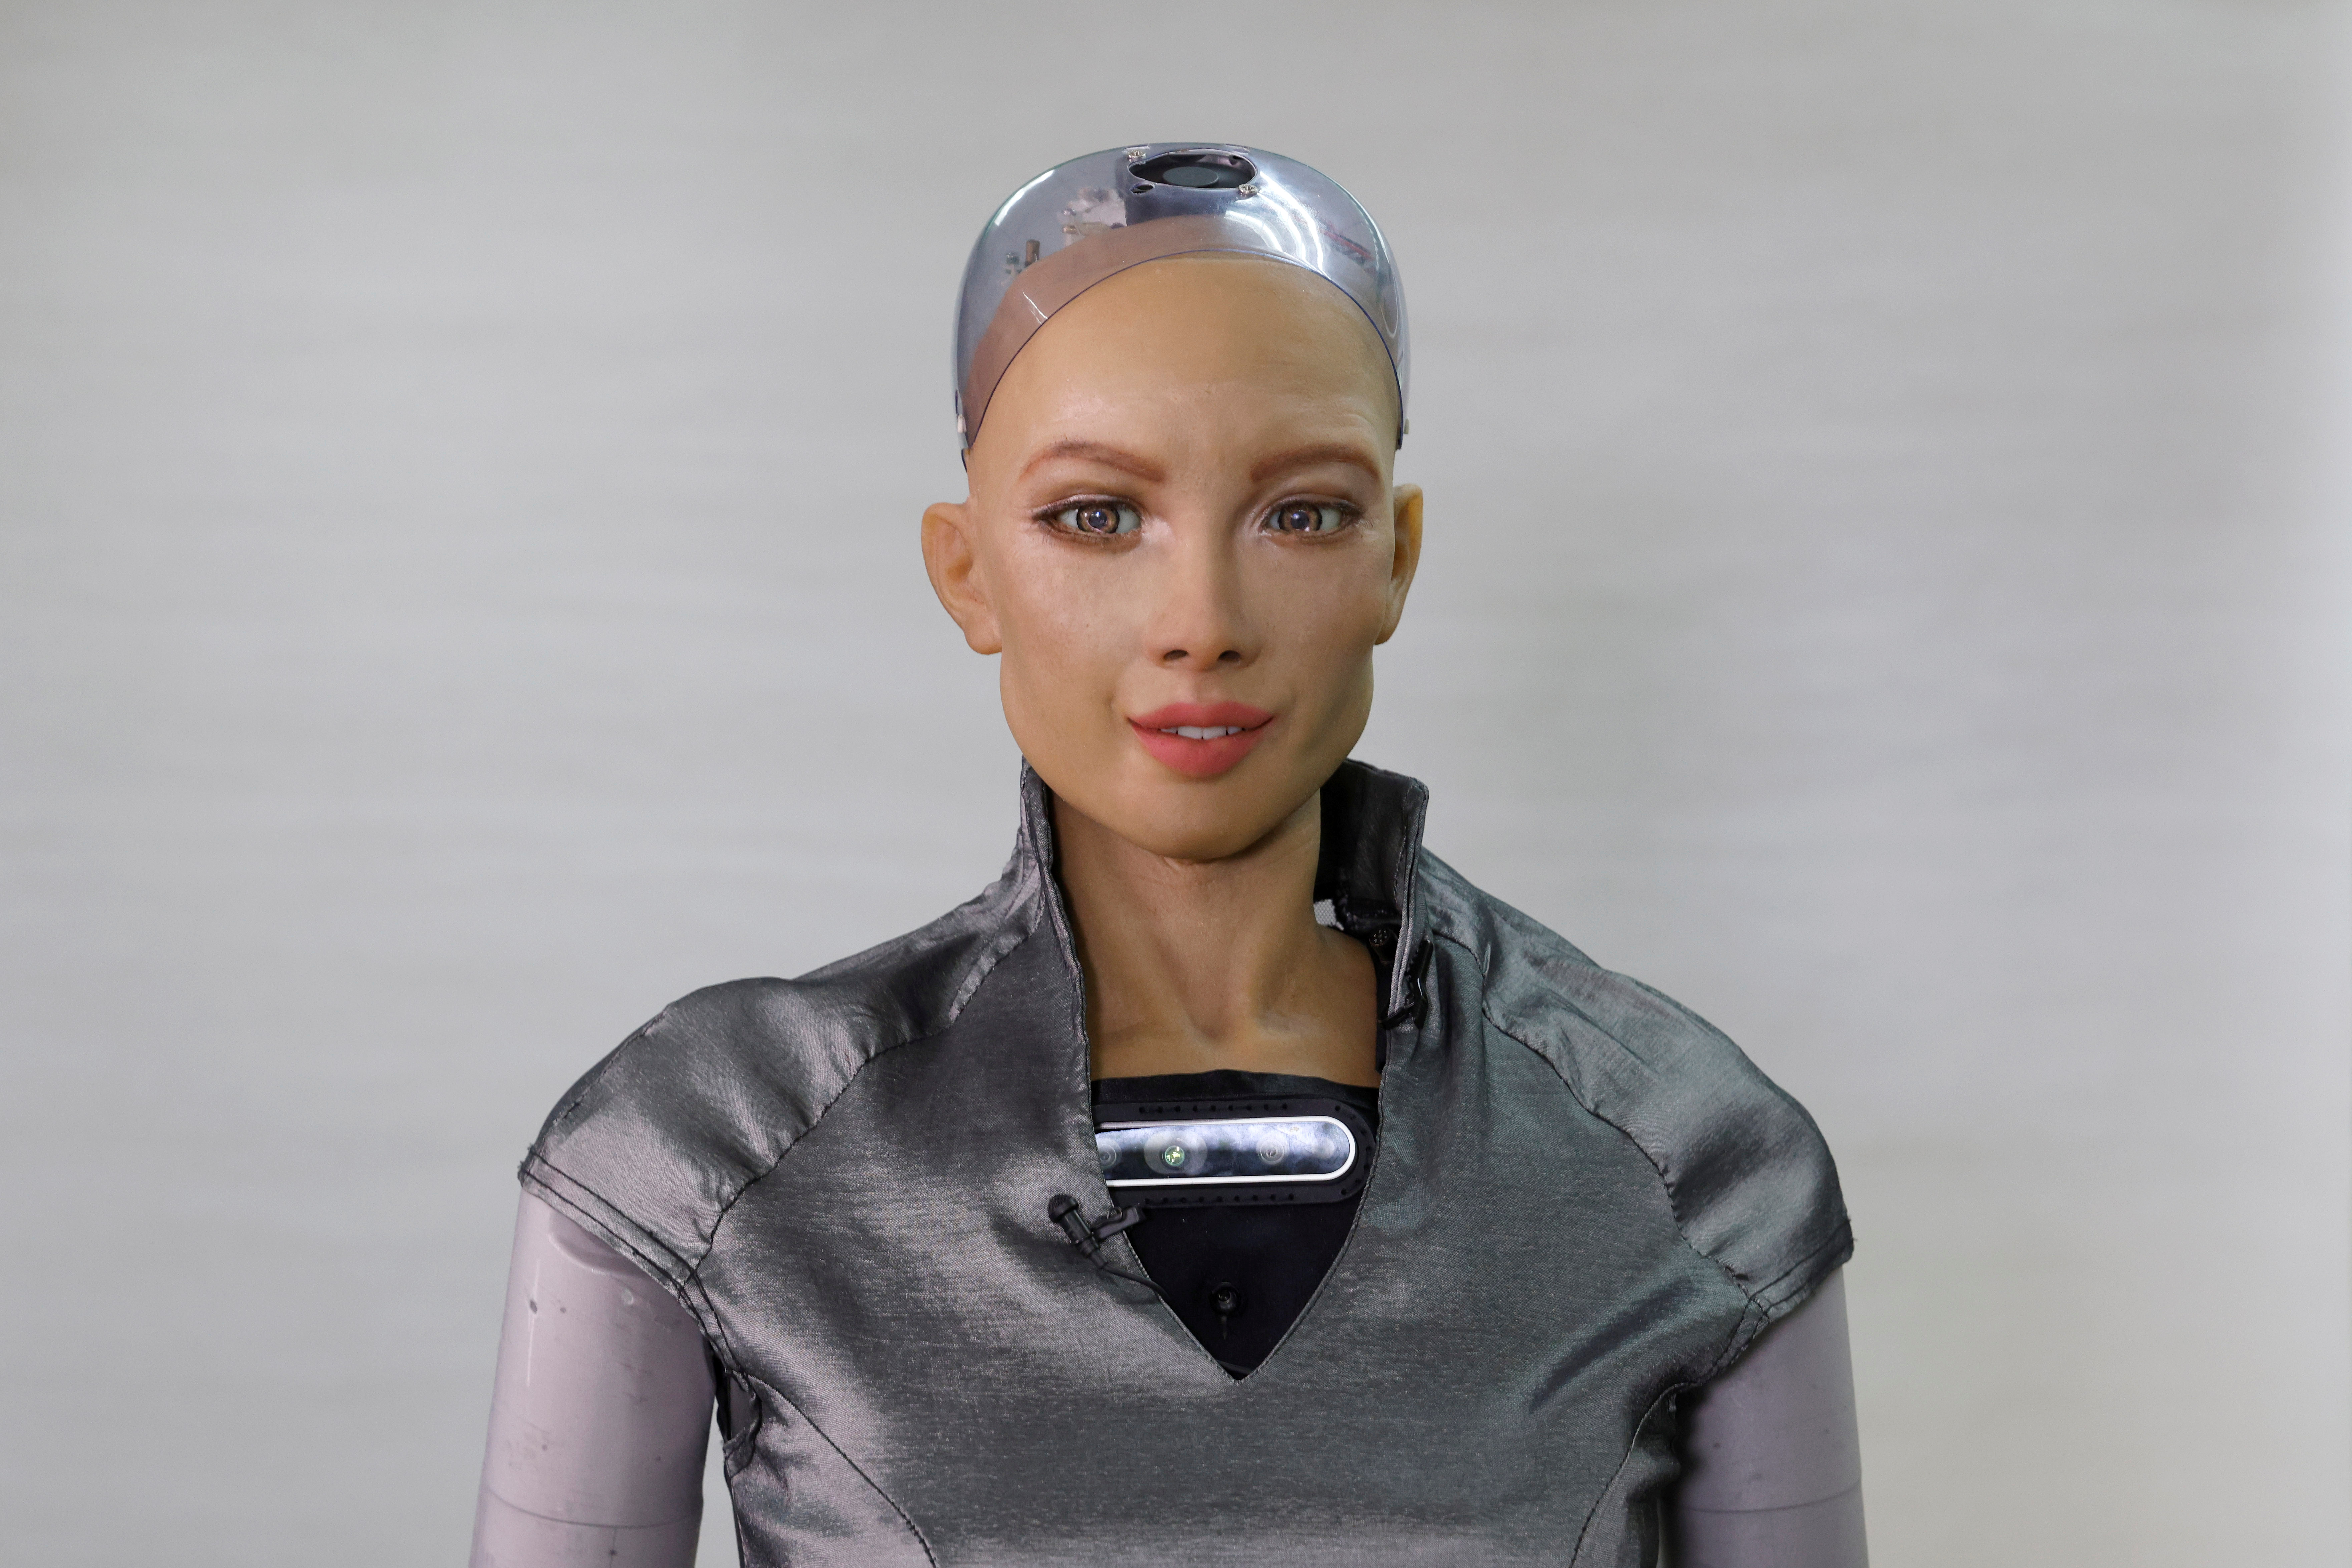 Humanoid robot Sophia developed by Hanson Robotics makes a facial expression at the company's lab in Hong Kong, China January 12, 2021. Picture taken January 12, 2021. REUTERS/Tyrone Siu